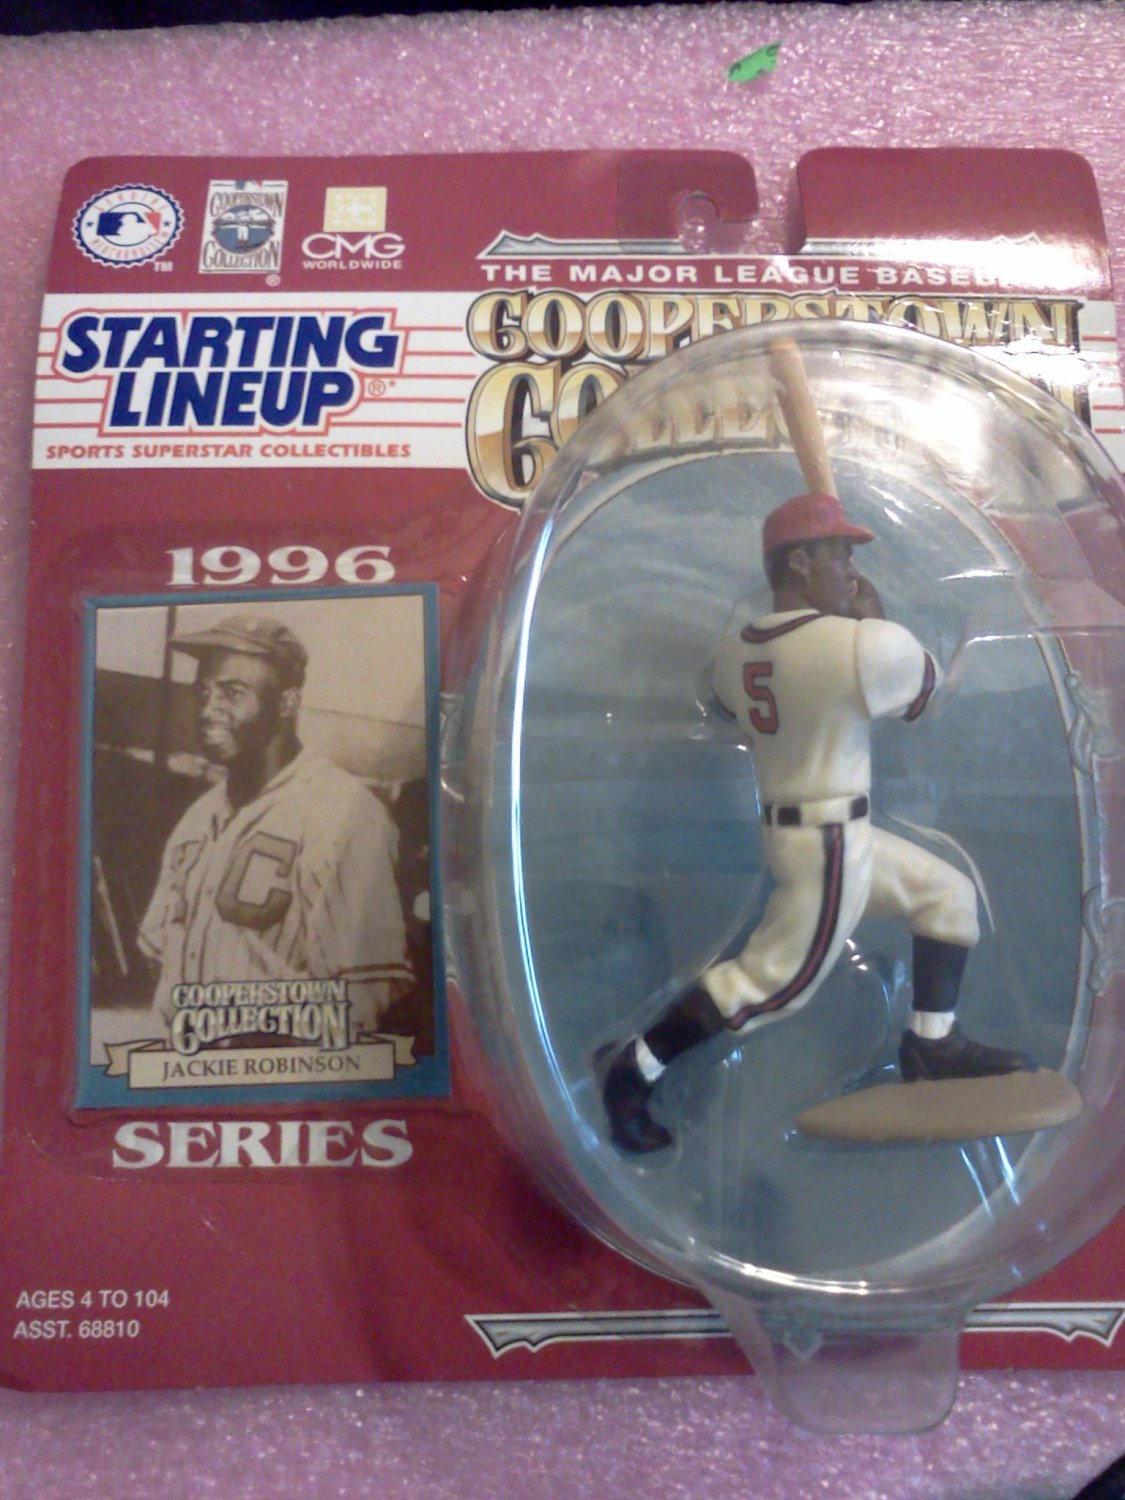 1996 Jackie Robinson Starting Lineup Figure-Cooperstown Collection-New In Packag